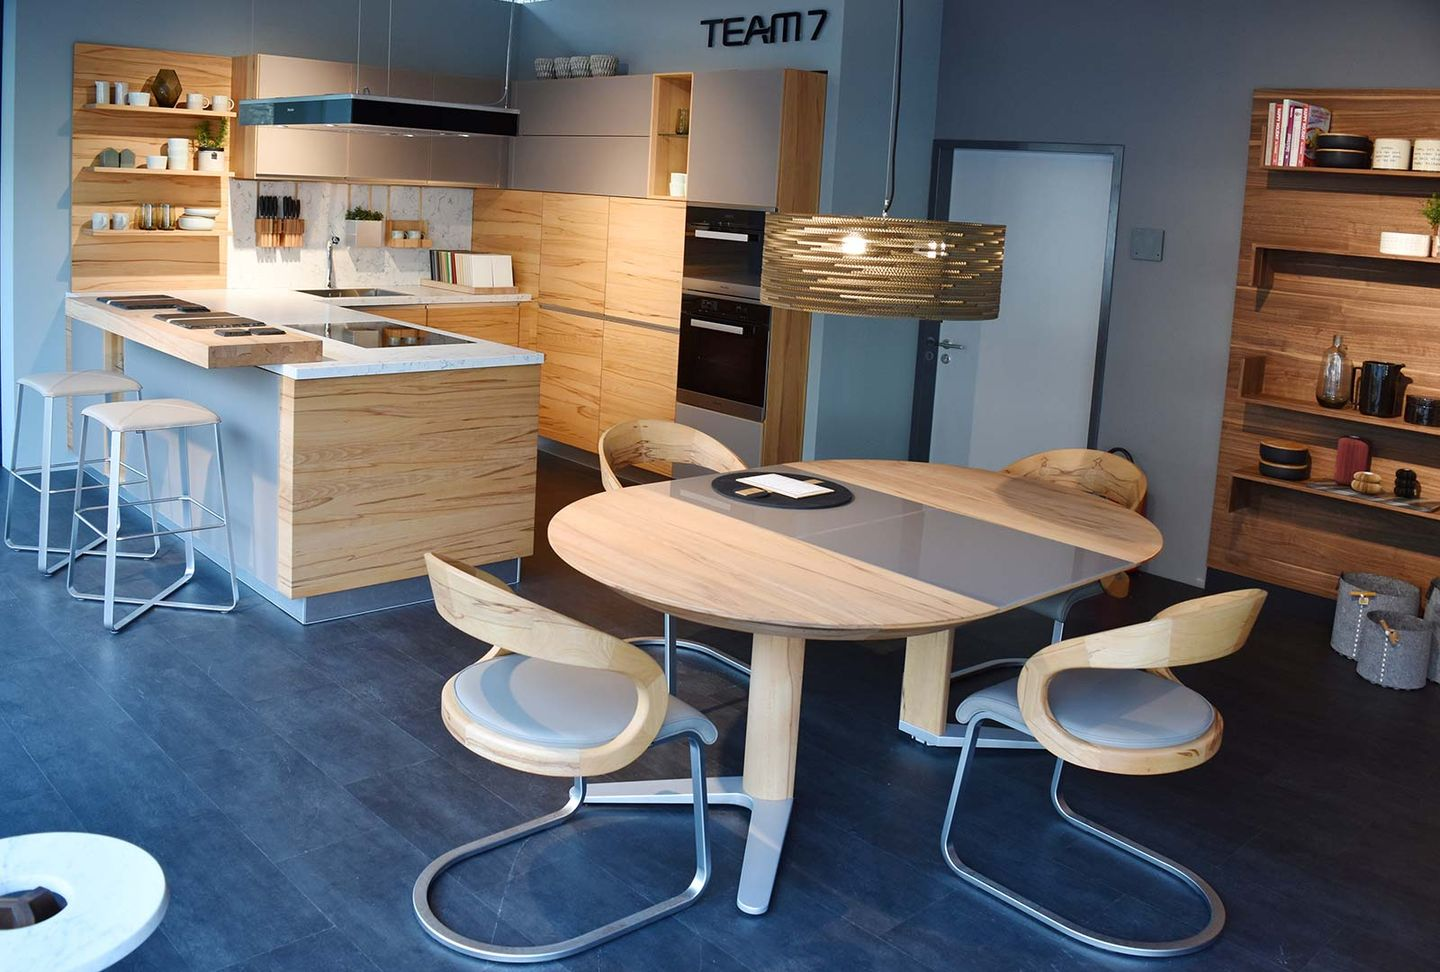 linee solid wood kitchen und girado dining table at TEAM 7 Stuttgart